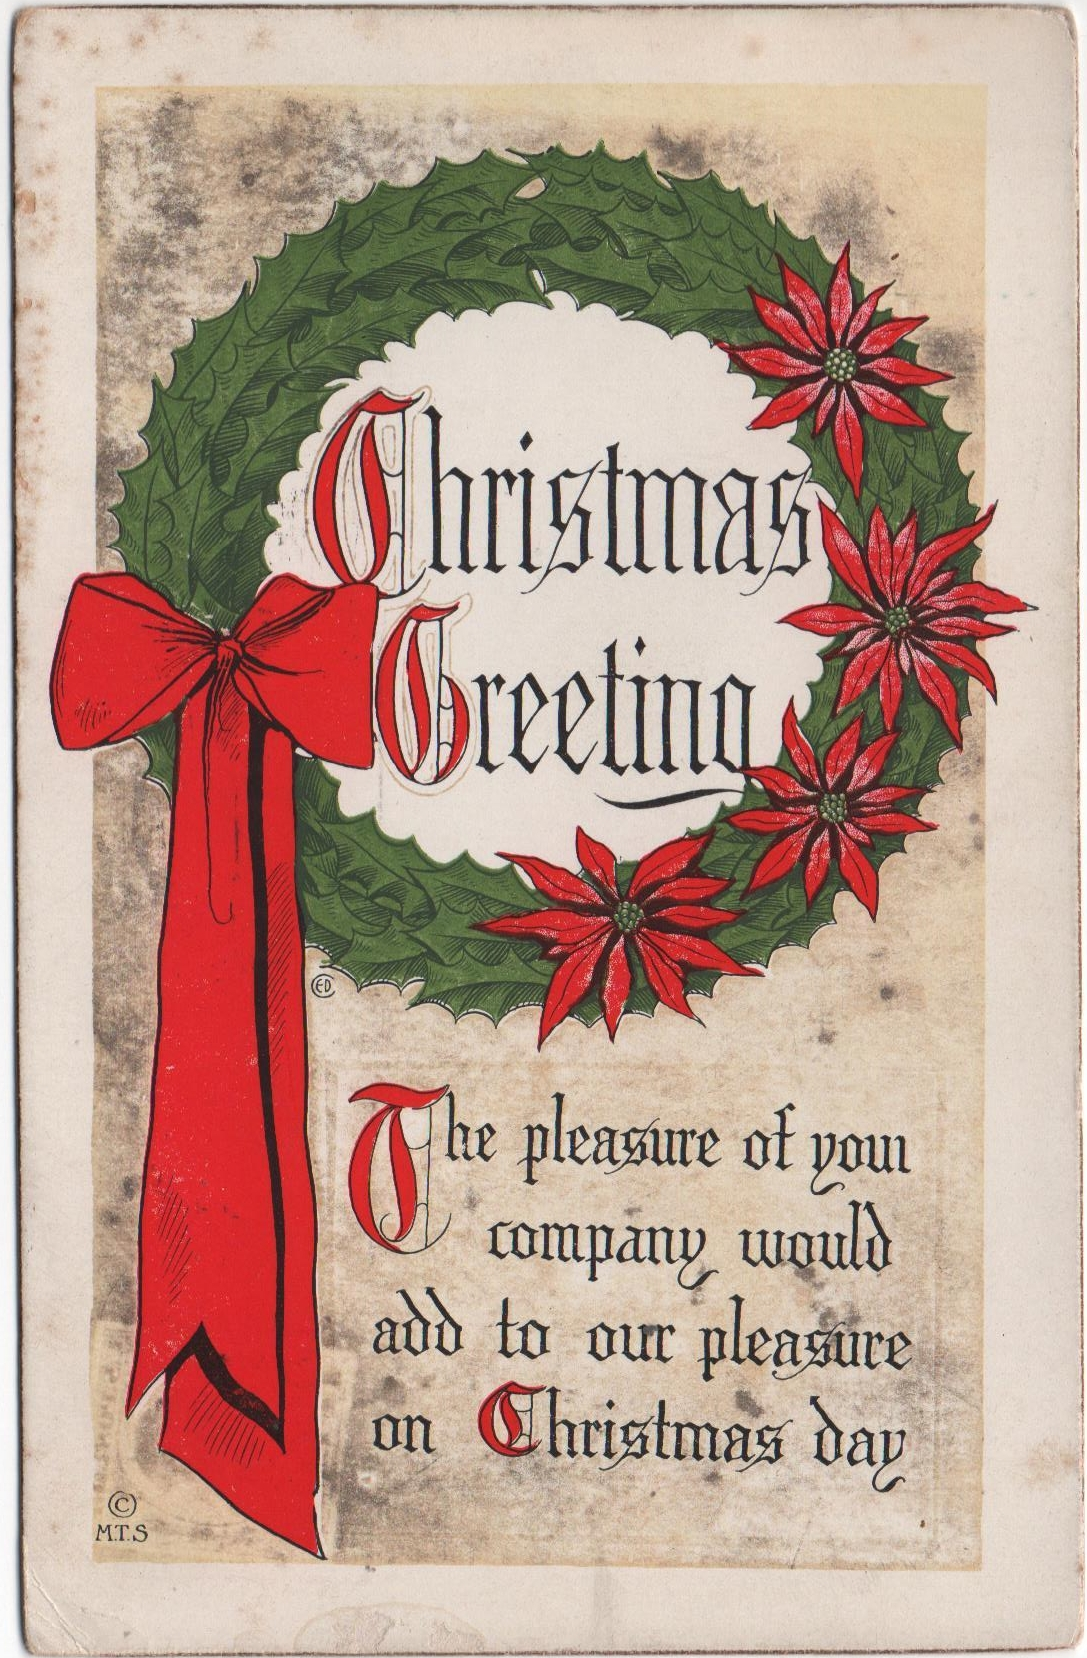 Christmas card mailed in 1913